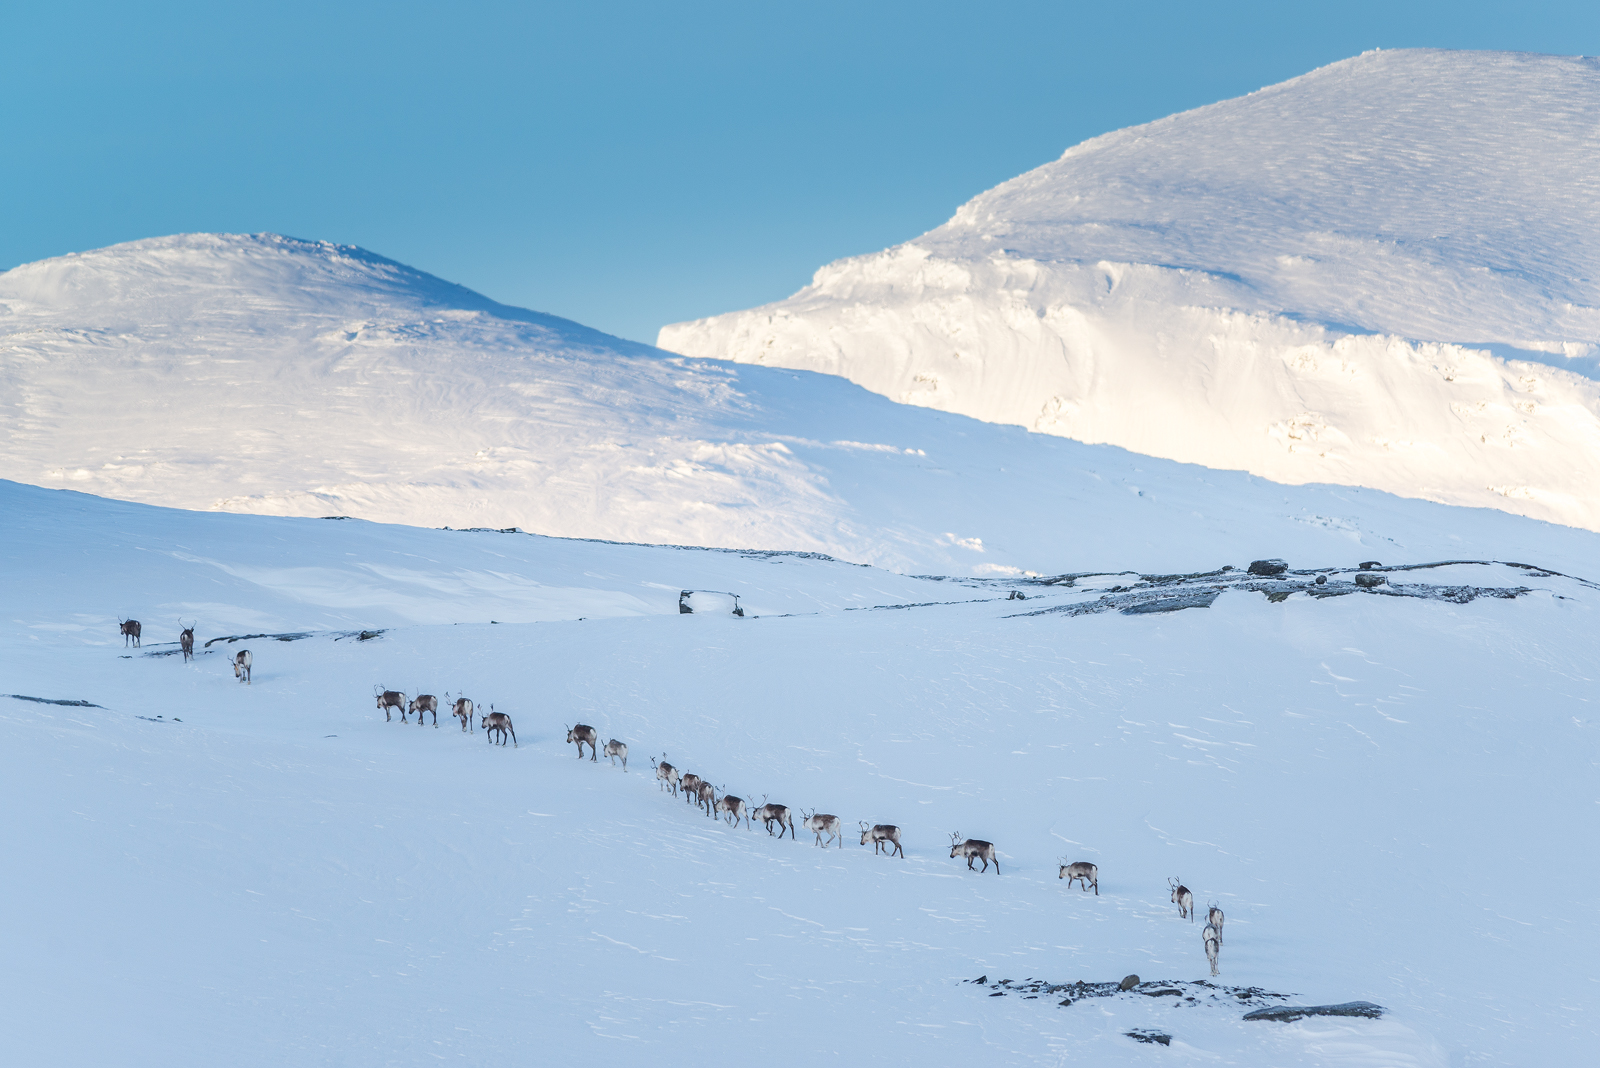 A herd of reindeers marching up the mountain.